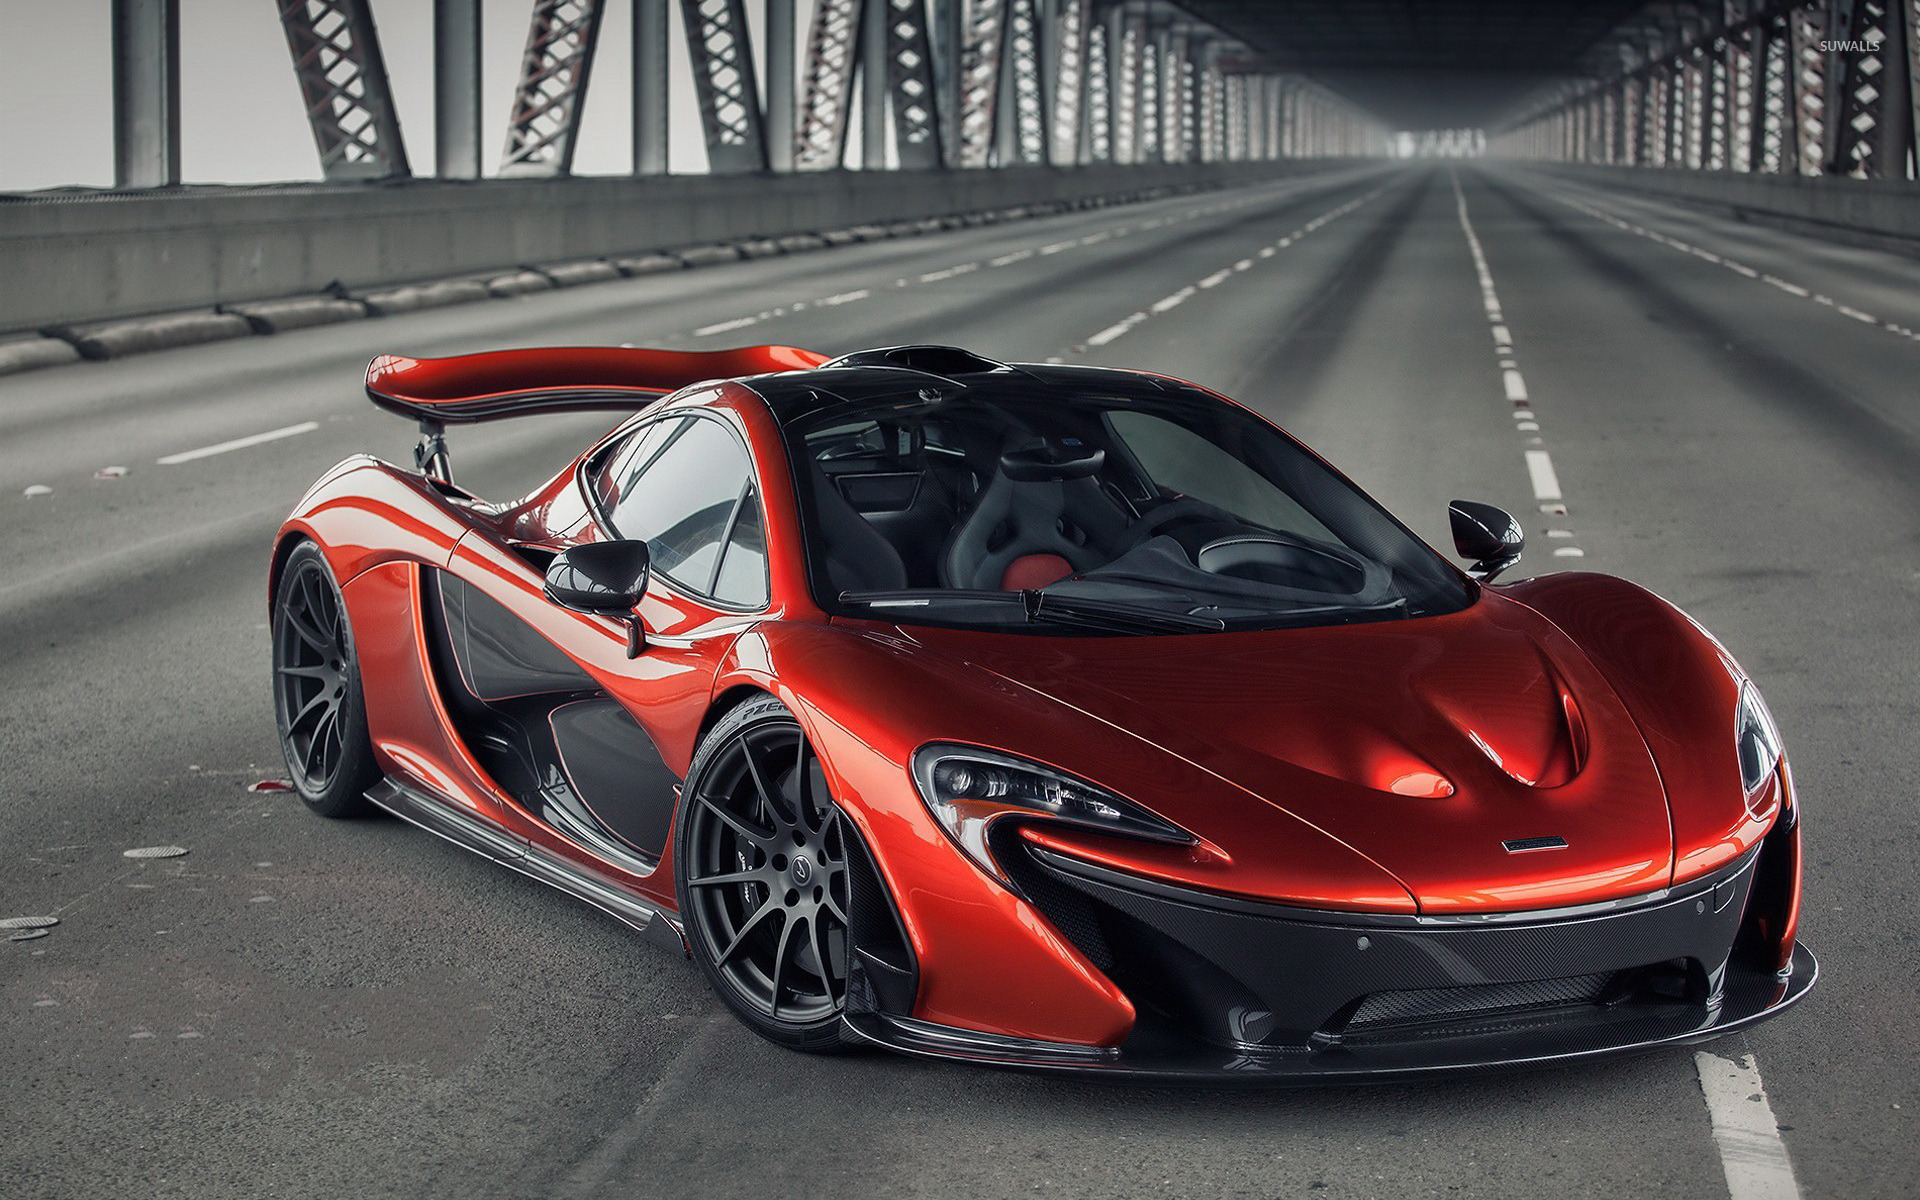 mclaren p1 10 wallpaper car wallpapers 46599. Black Bedroom Furniture Sets. Home Design Ideas